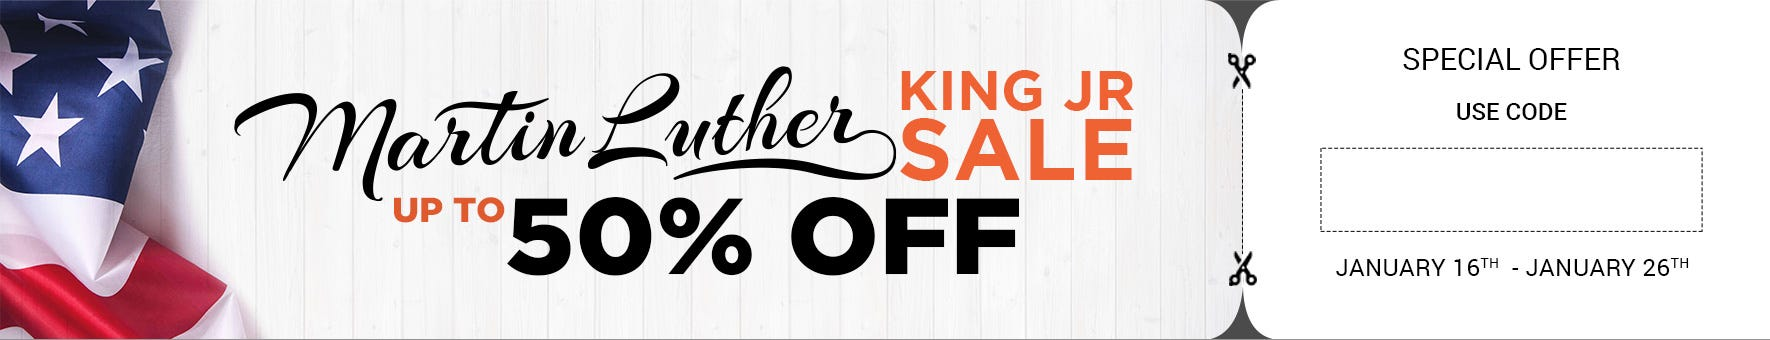 MARTIN LUTHER KING JR SALE - Up to 50% Off